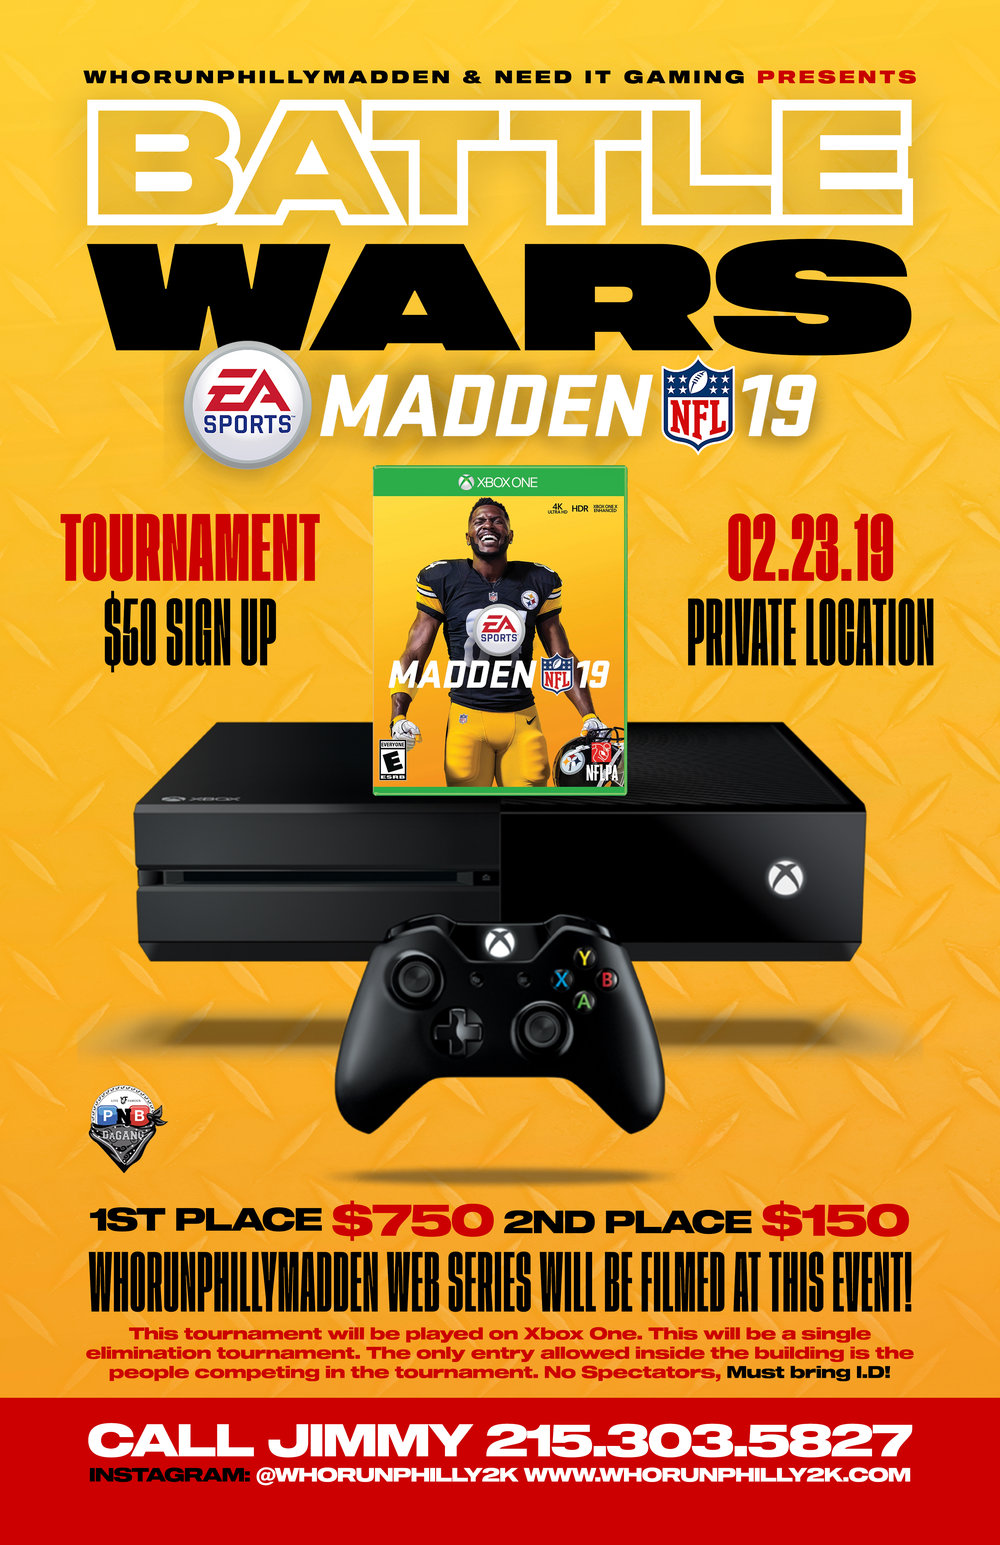 WhoRunPhilly2K 2K & Madden NFL Tournaments In Philly